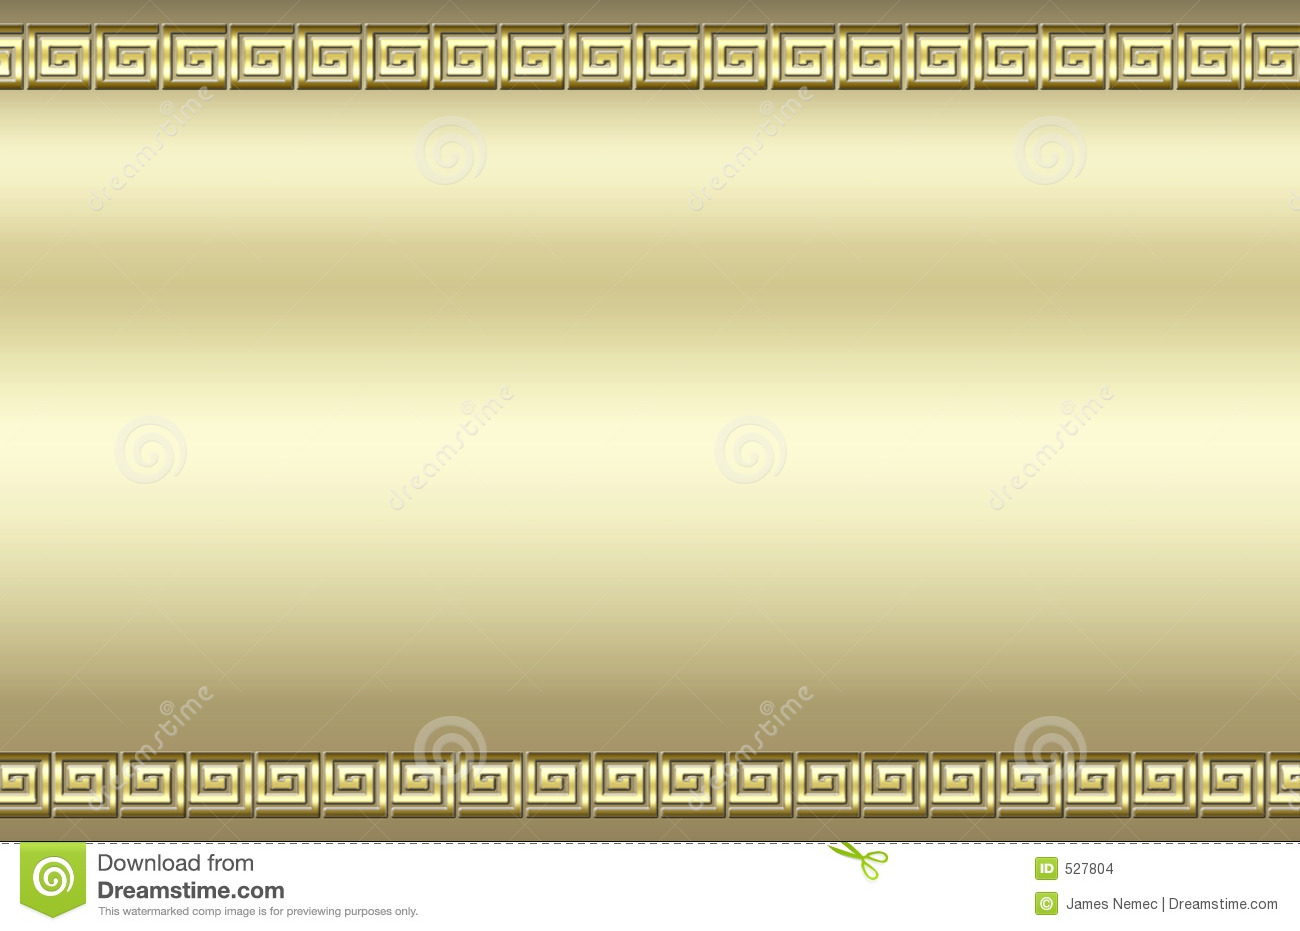 ... with a raised square swirl border that resembles a Greek key pattern